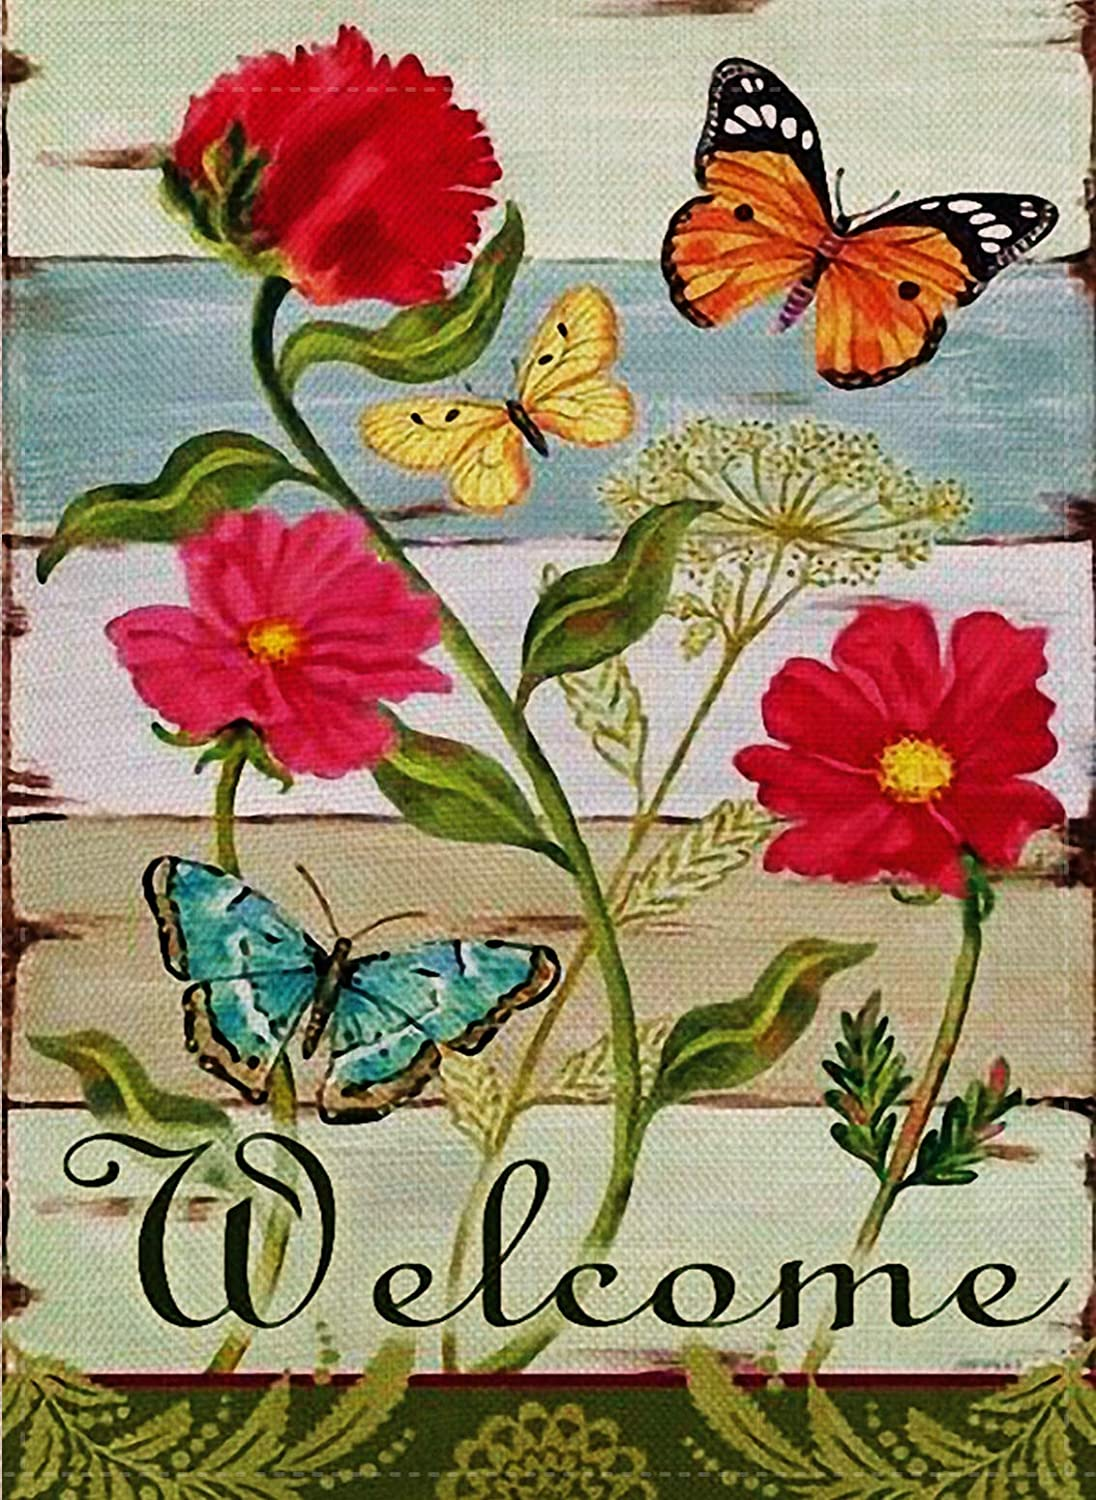 Furiaz Decorative Vintage Flower Small Garden Flag Double Sided, Home Floral Burlap Welcome Quote Zinnia Butterfly Outside House Yard Decoration, Seasonal Outdoor Décor Flag 12.5 x 18 Spring Summer